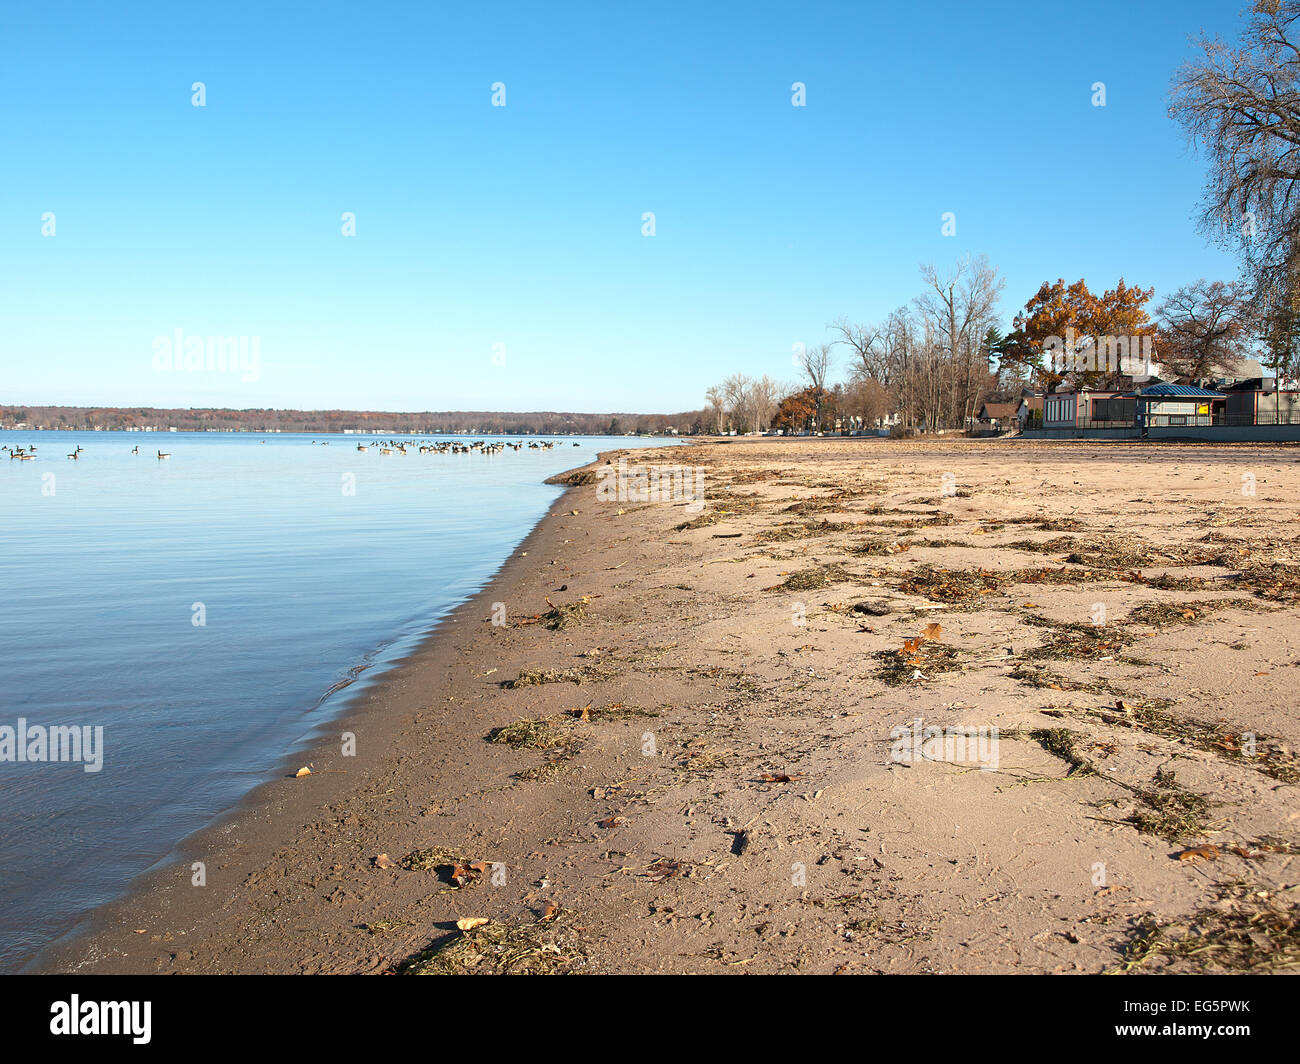 Sylvan Beach, New York - Stock Image